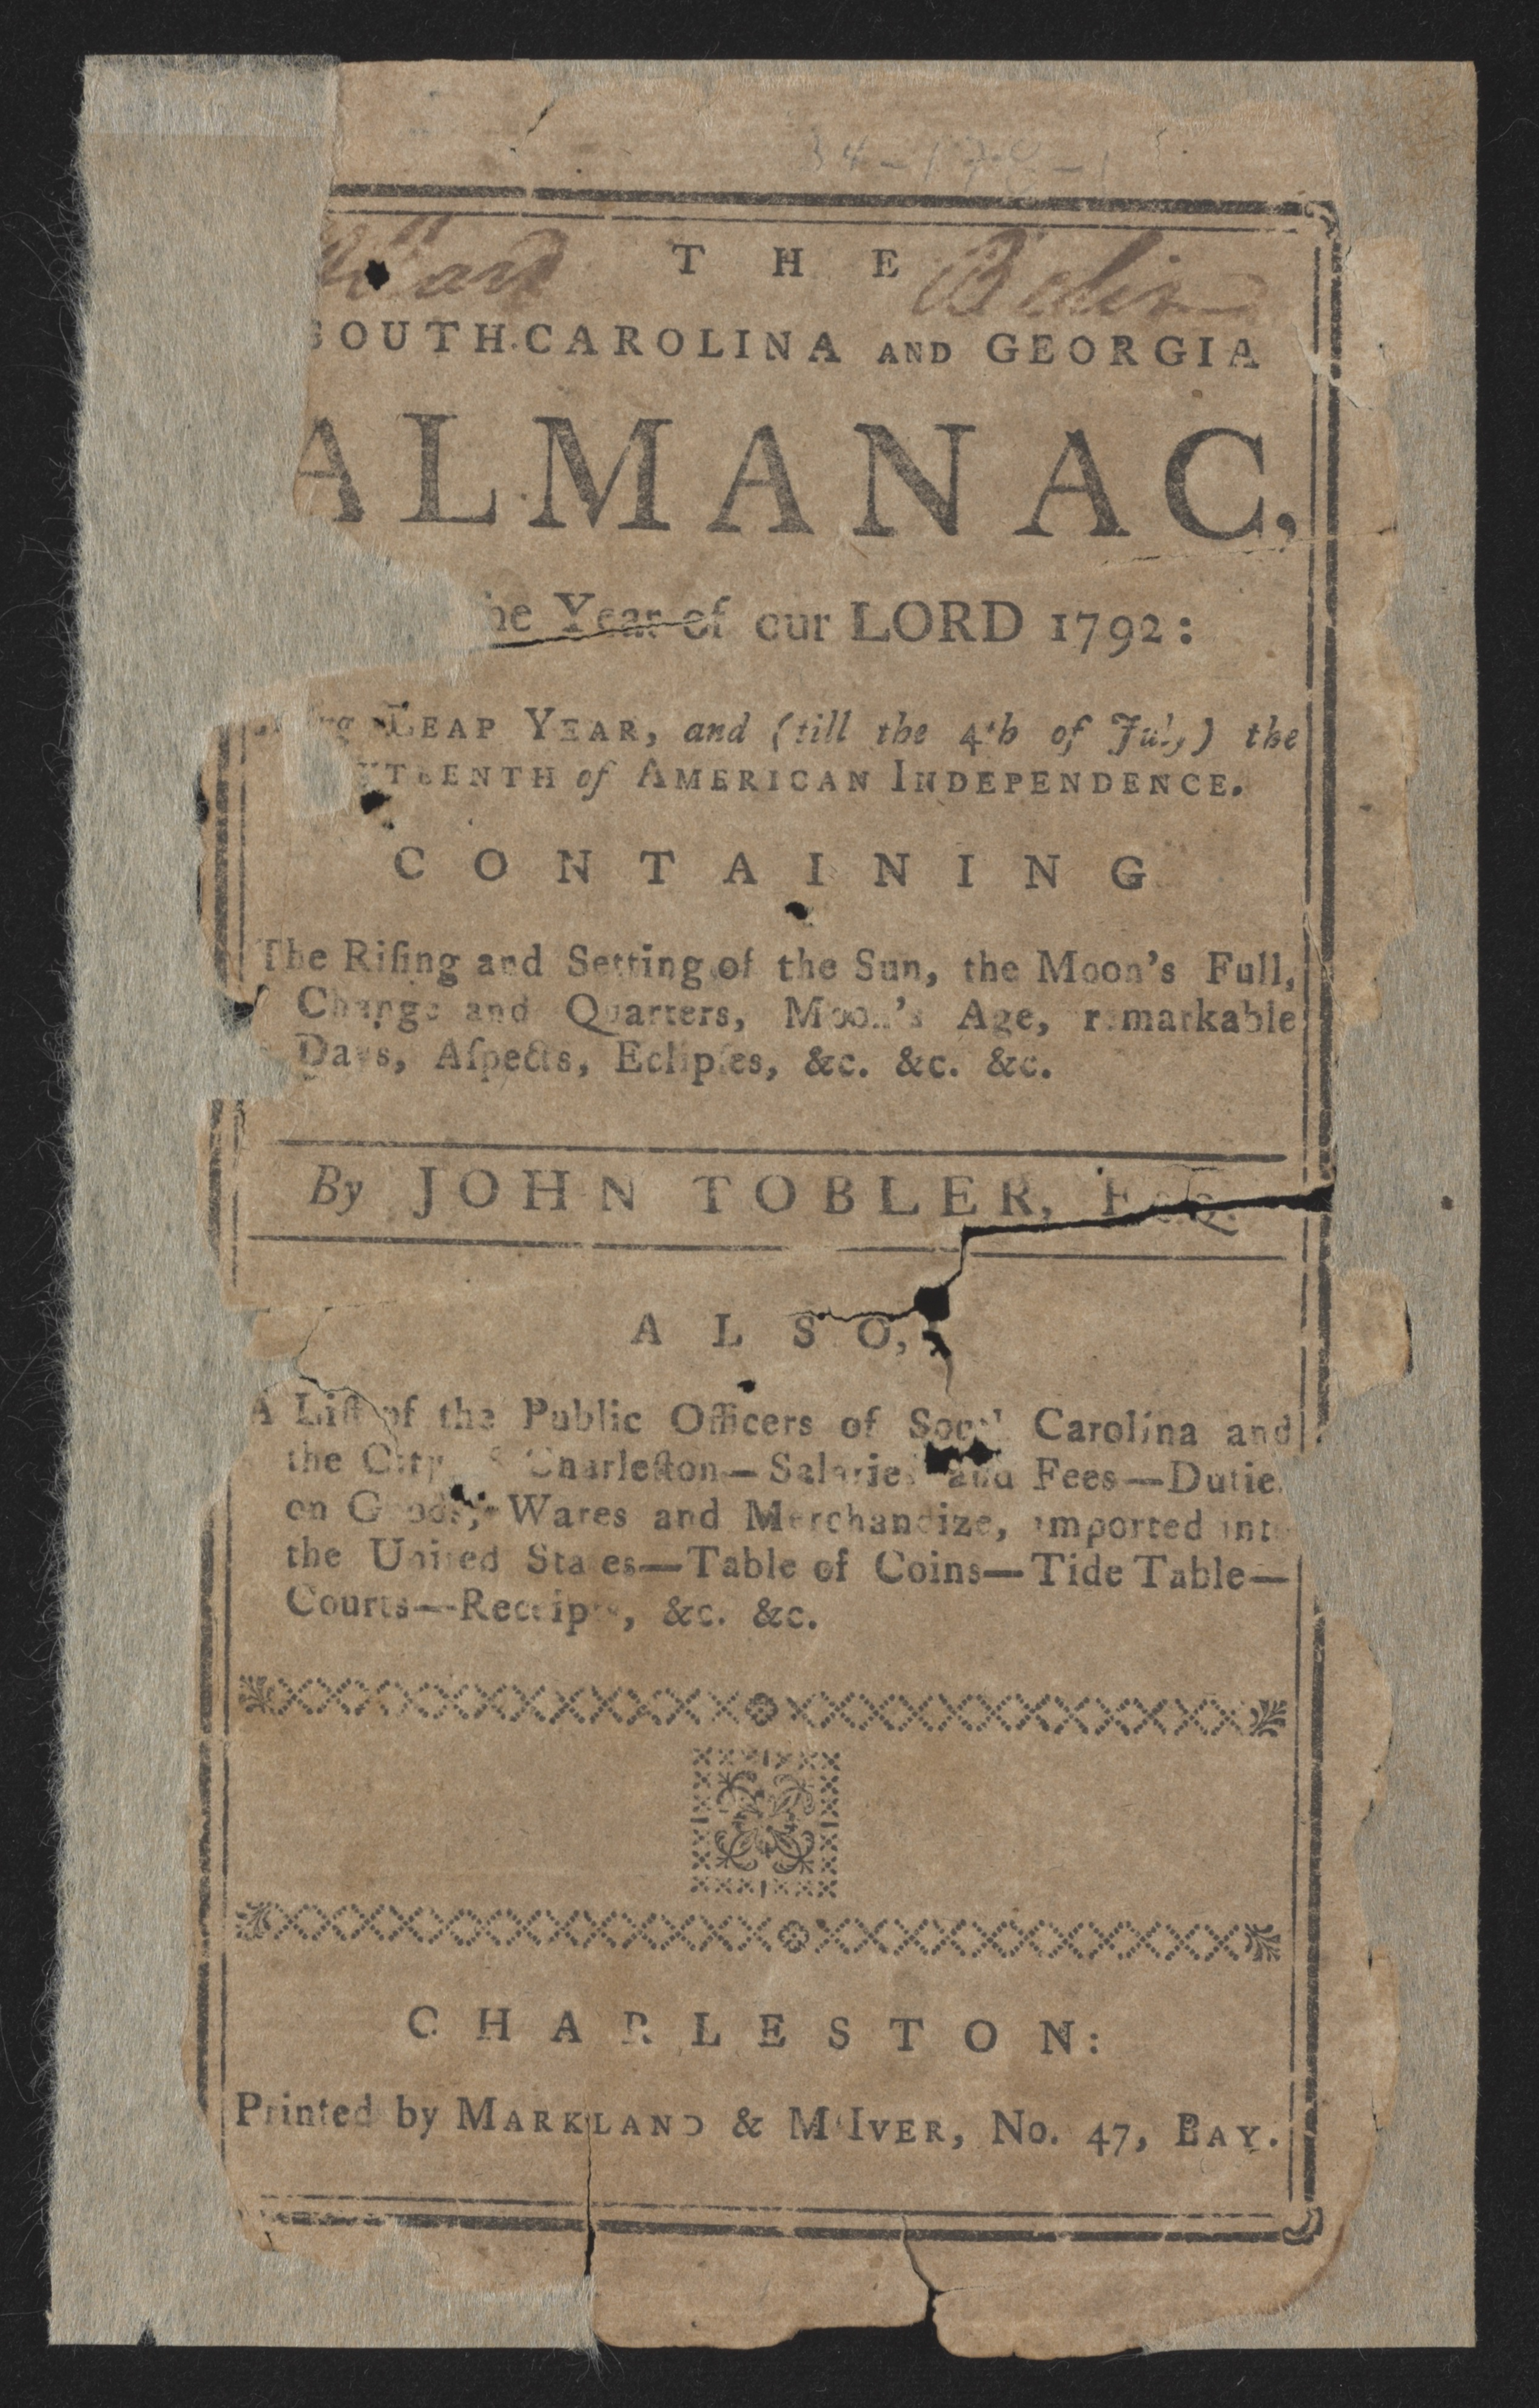 Sandy Island Plantation Journal, Volume 1, 1792, Cover